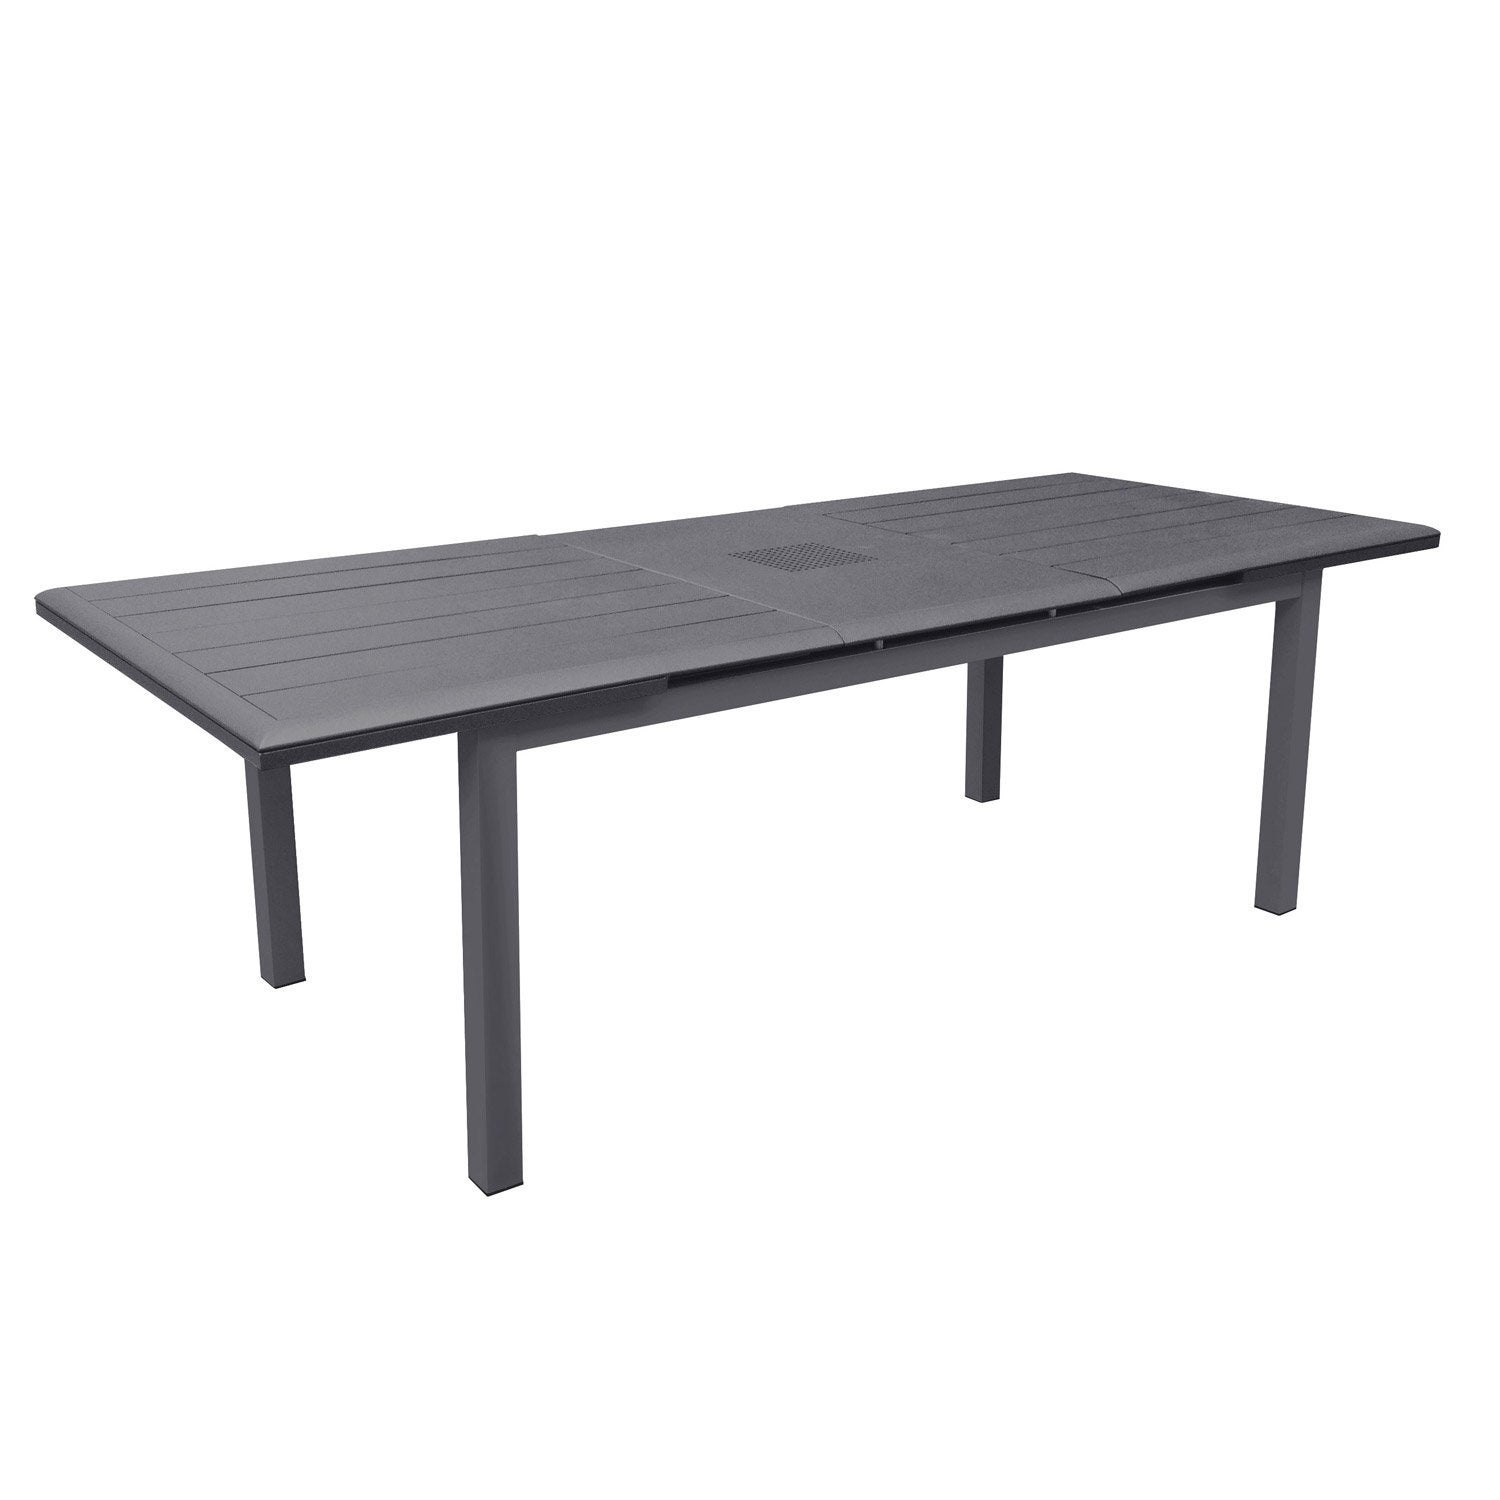 Table de jardin louisiane rectangulaire gris 6 8 personnes leroy merlin - Table de jardin octogonale ...